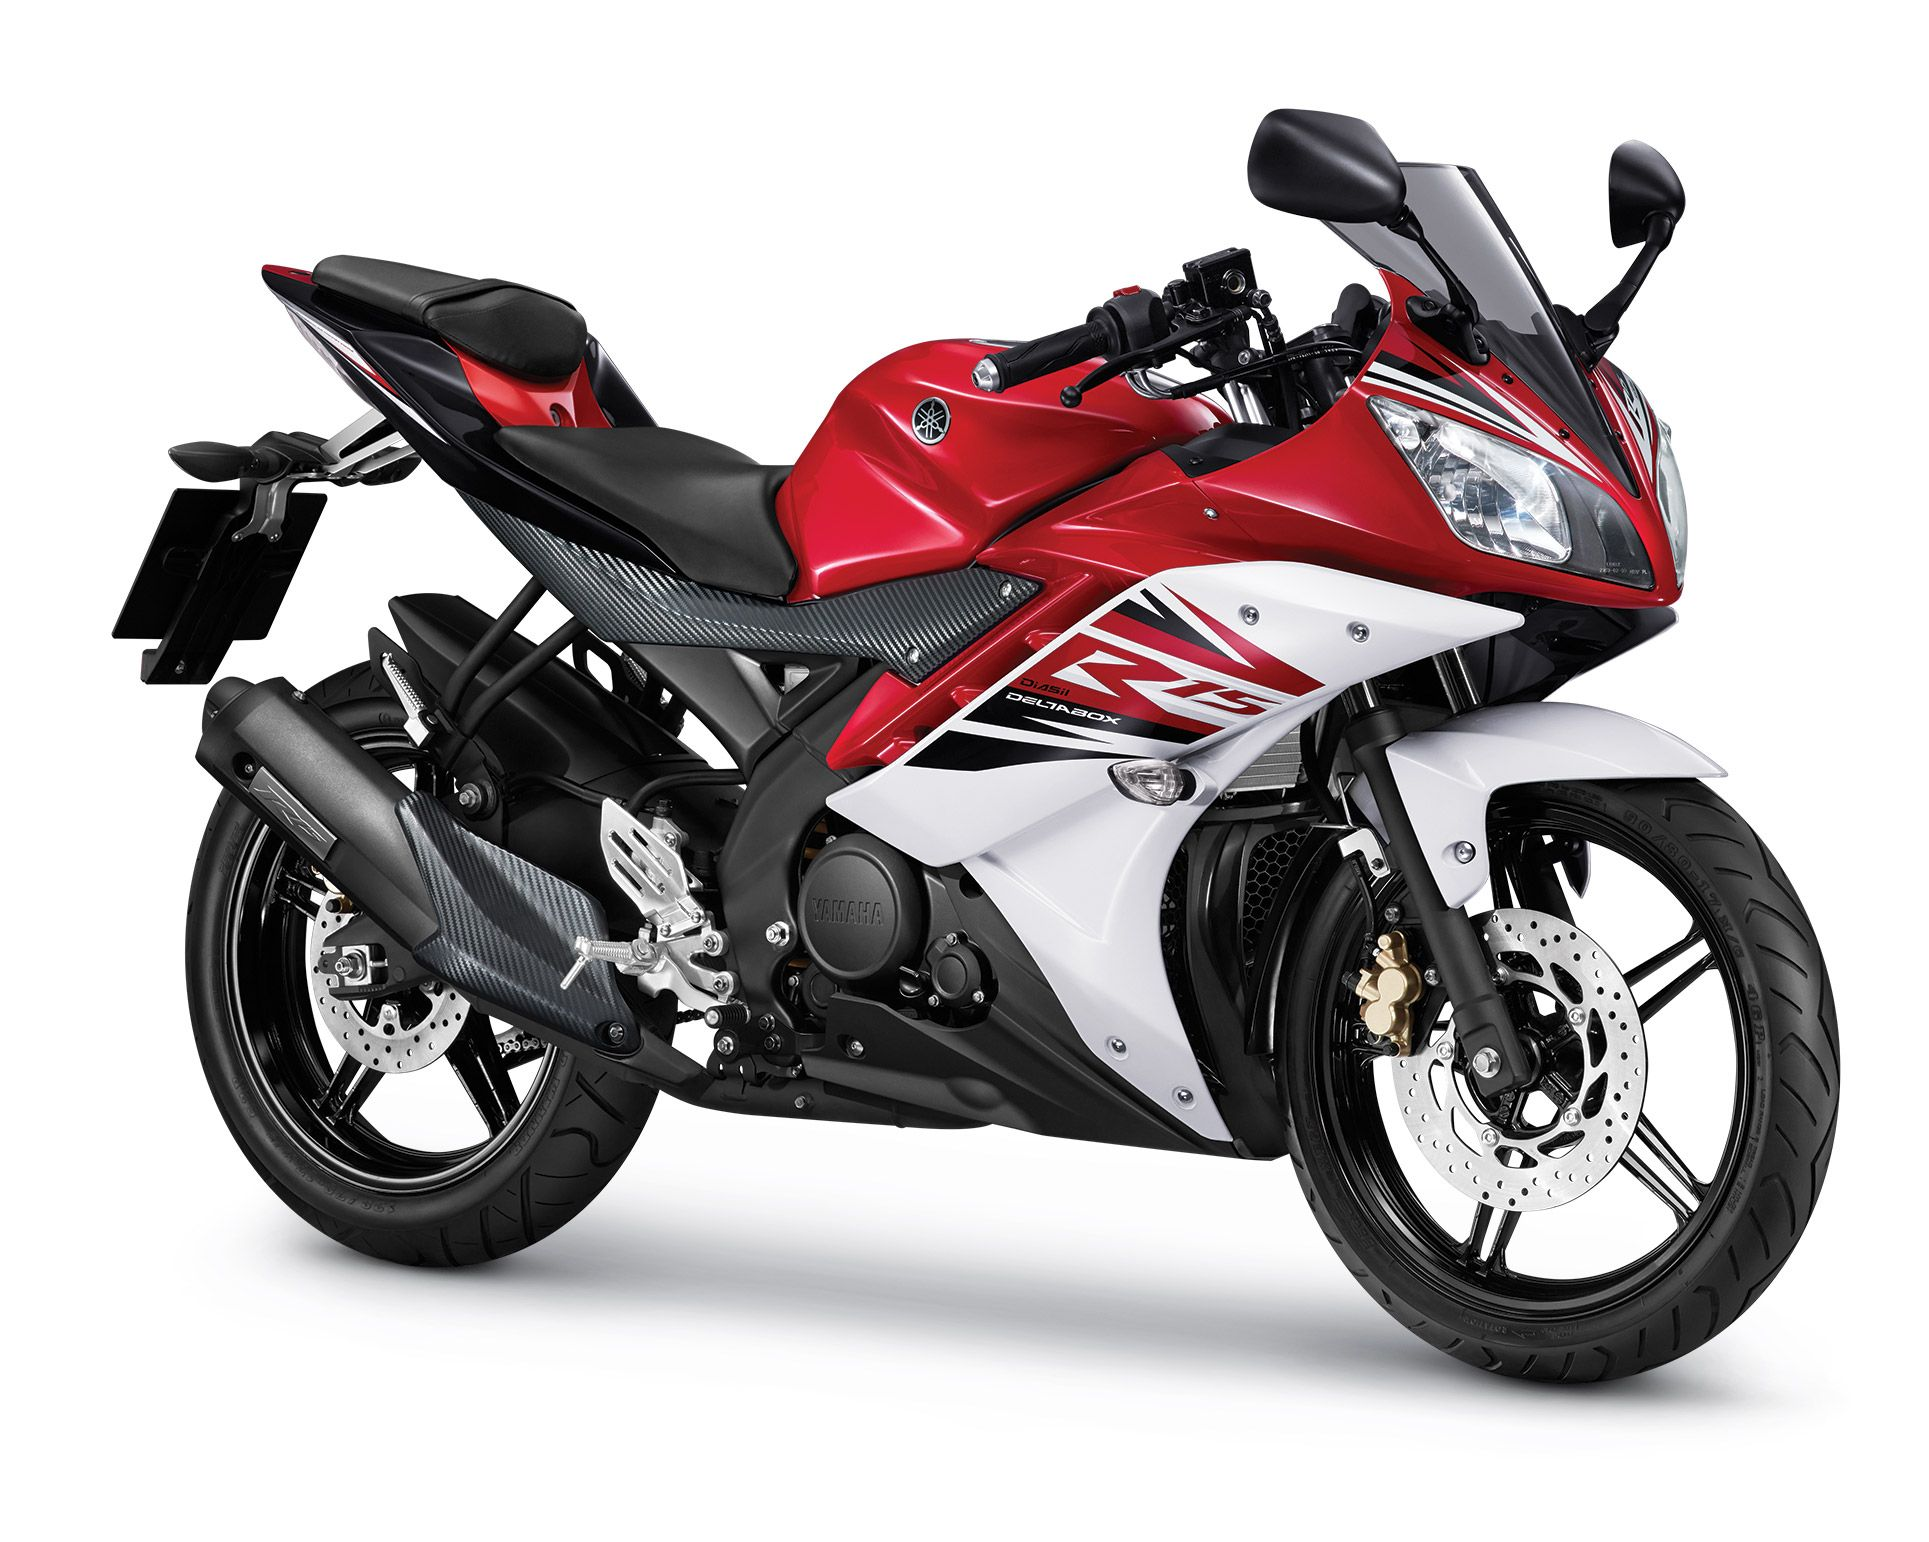 Yamaha Yzf R15 Red 2014 Yamaha Yzf Motorcycles In India